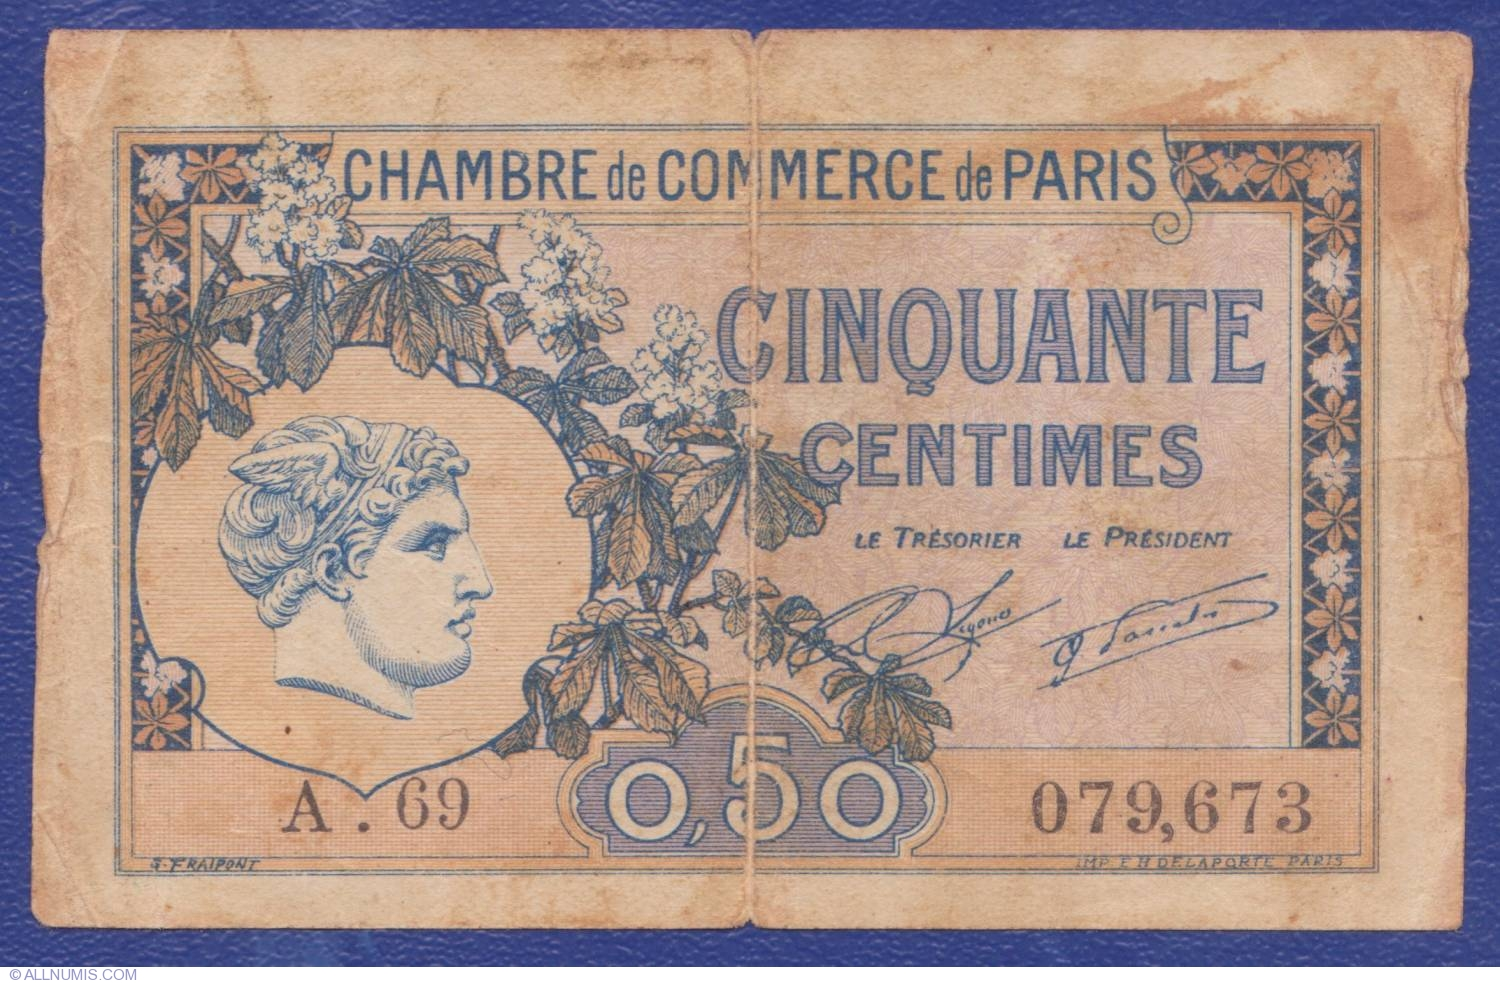 50 centimes 1920 paris chambre de commerce france for Chambre de commerce de rawdon